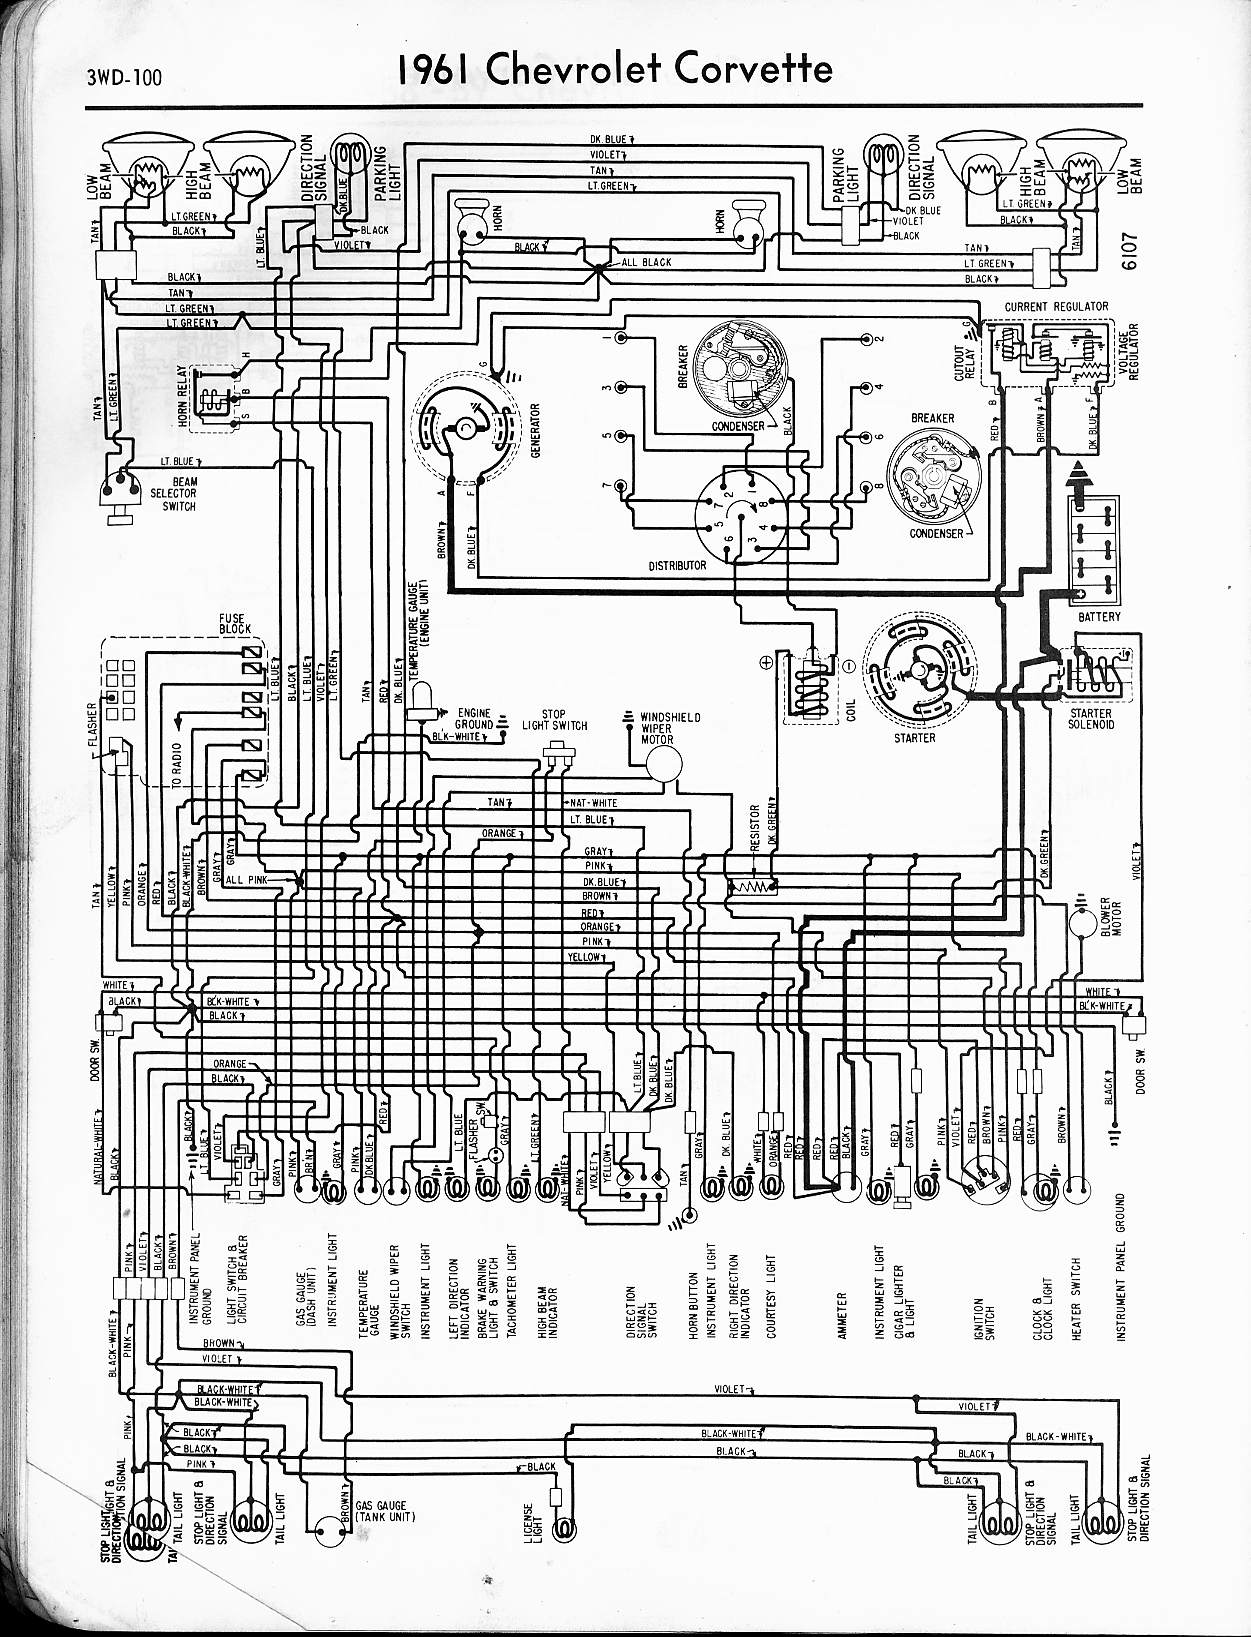 1957 Corvette Wire Diagram - Trusted Wiring Diagram • on oldest corvette, classic corvette,